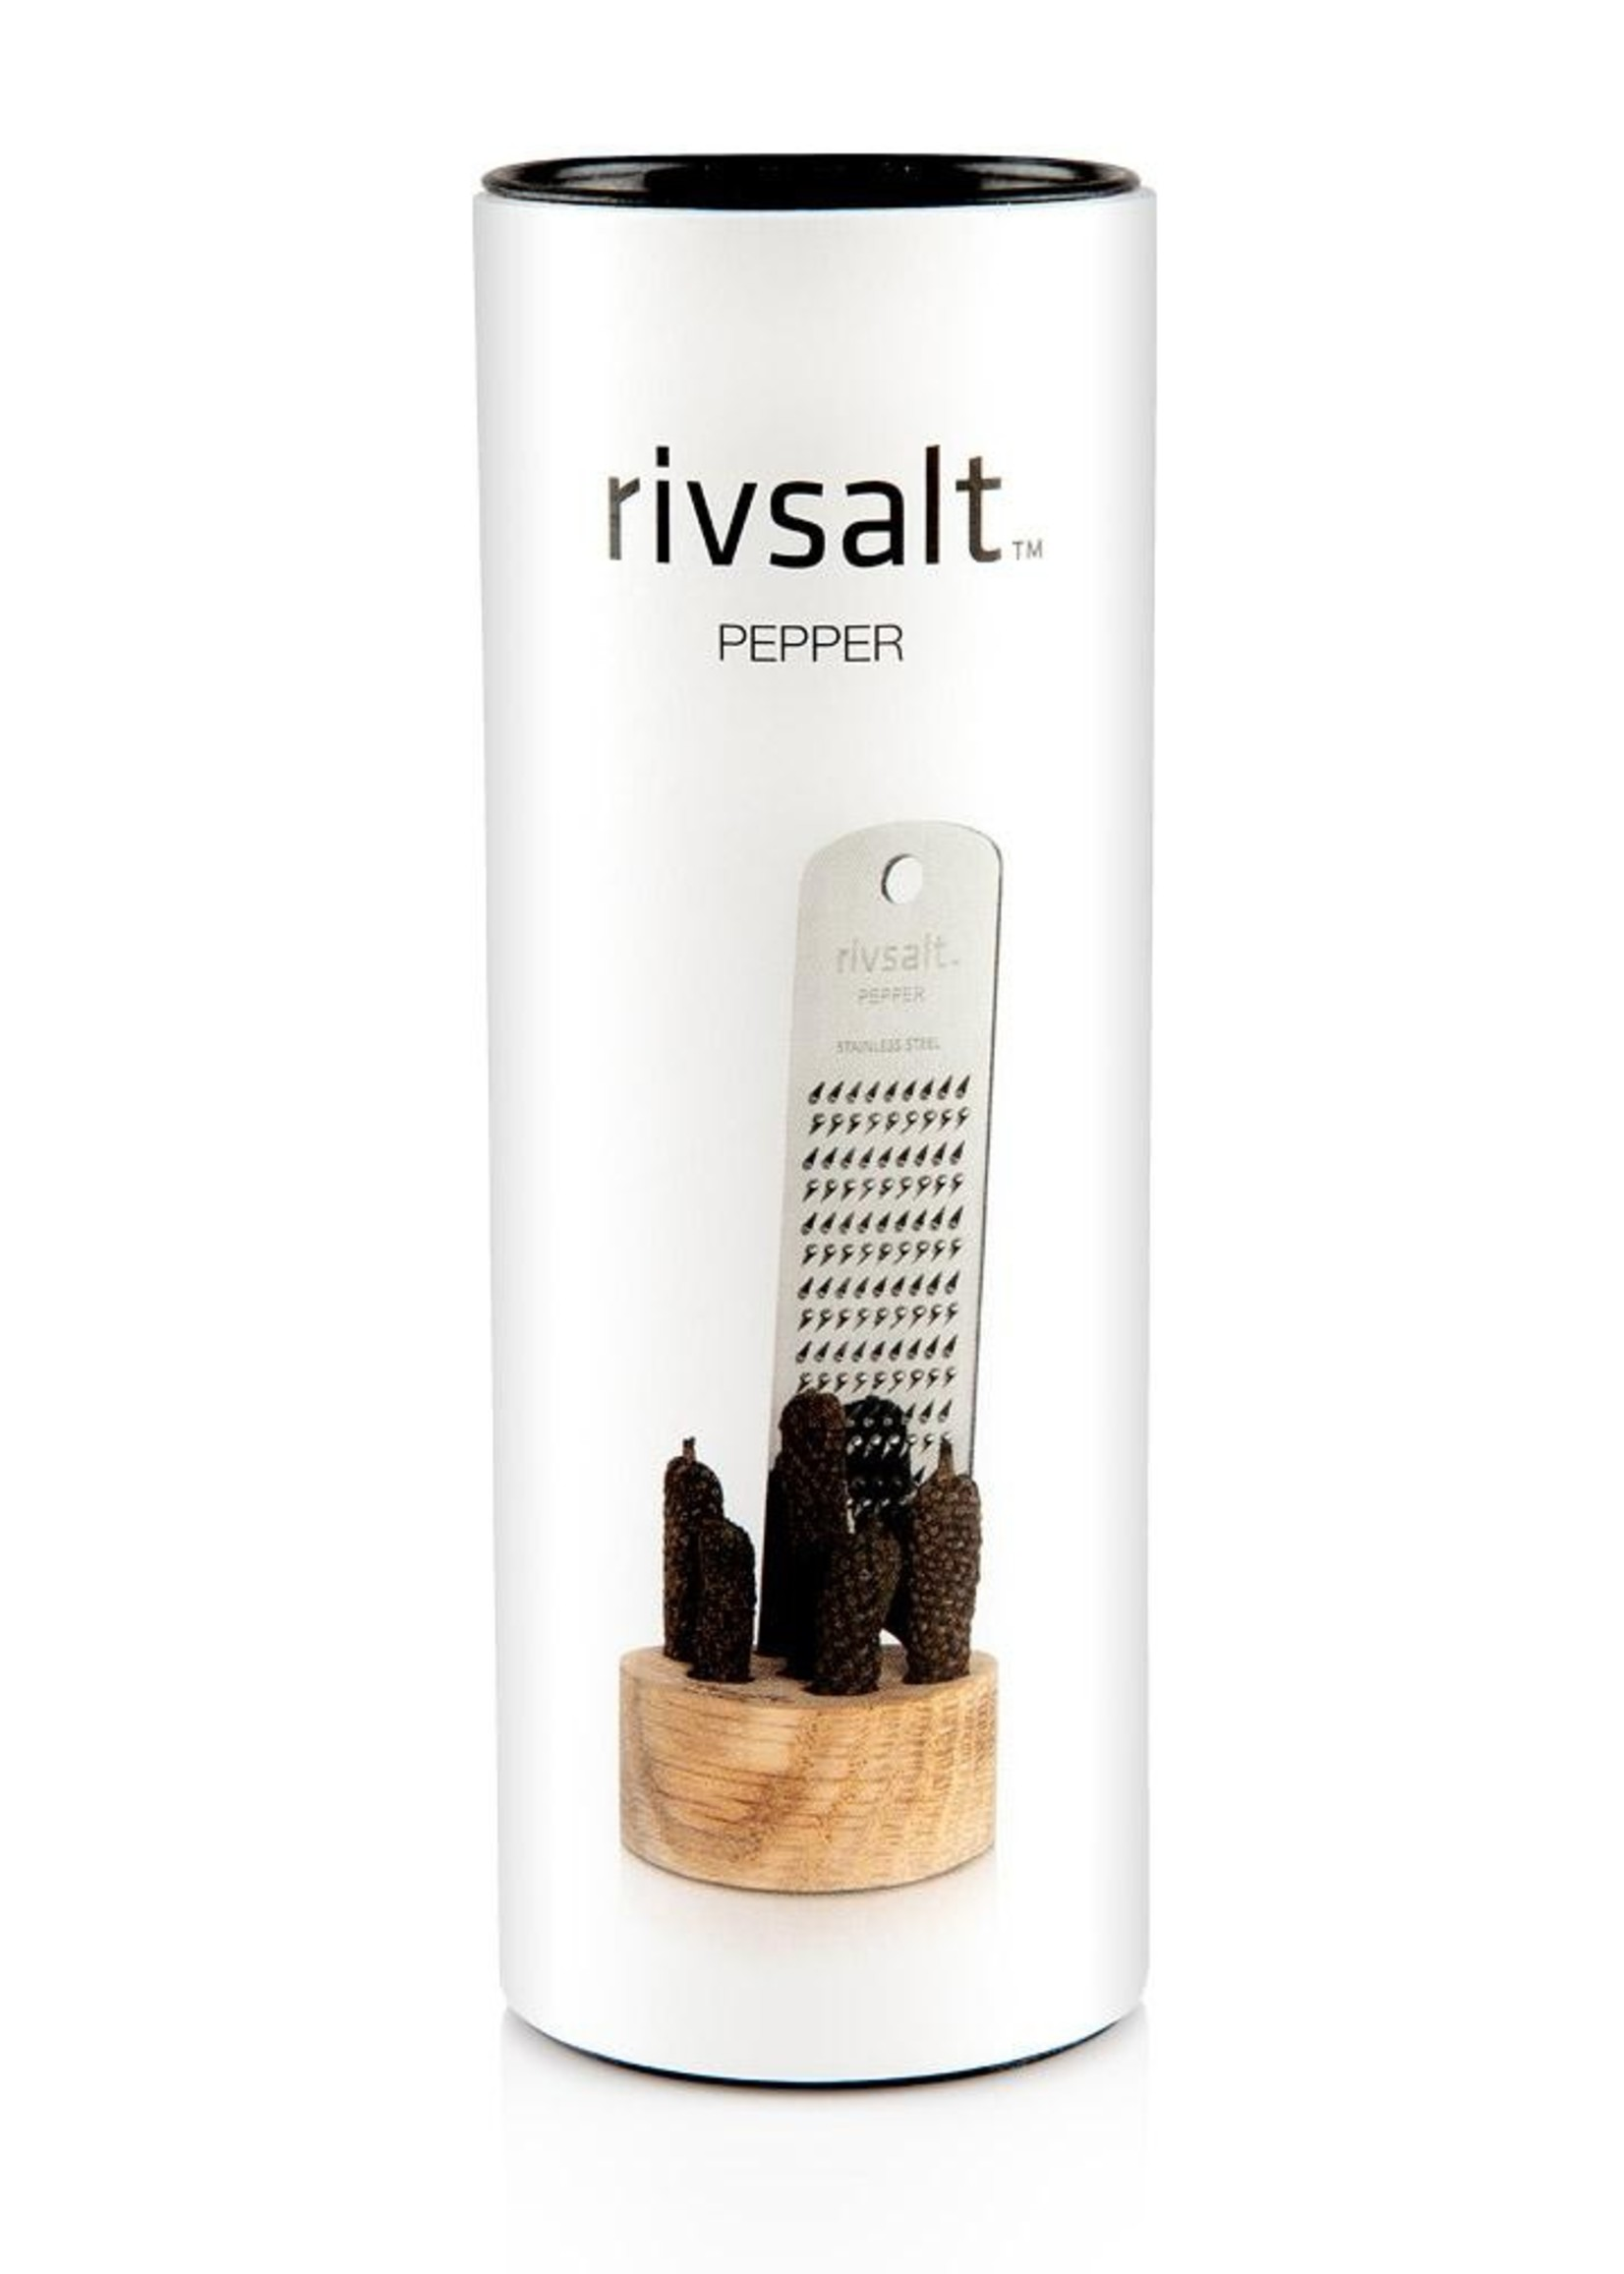 RIVSALT Java Long Bean Pepper Gift Set